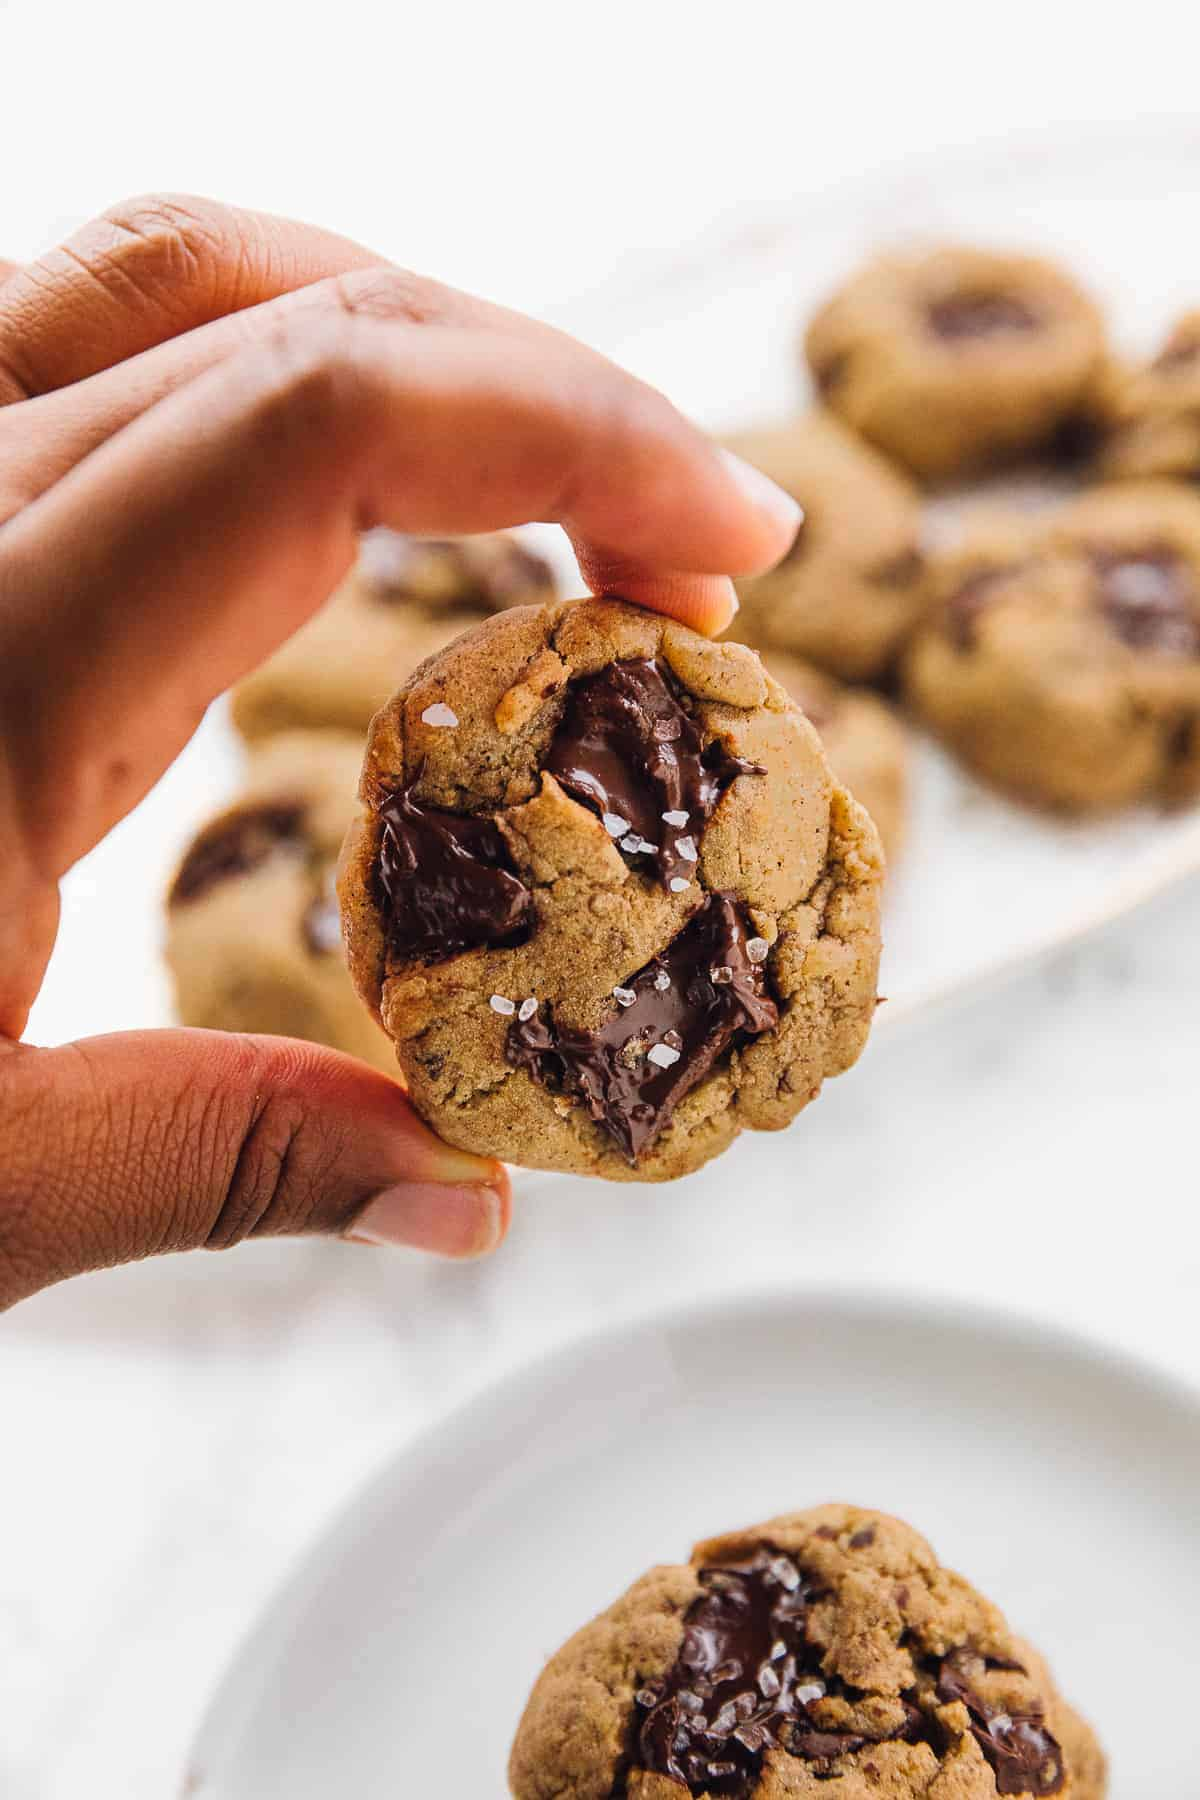 holding a Salted chocolate chip tahini cookie